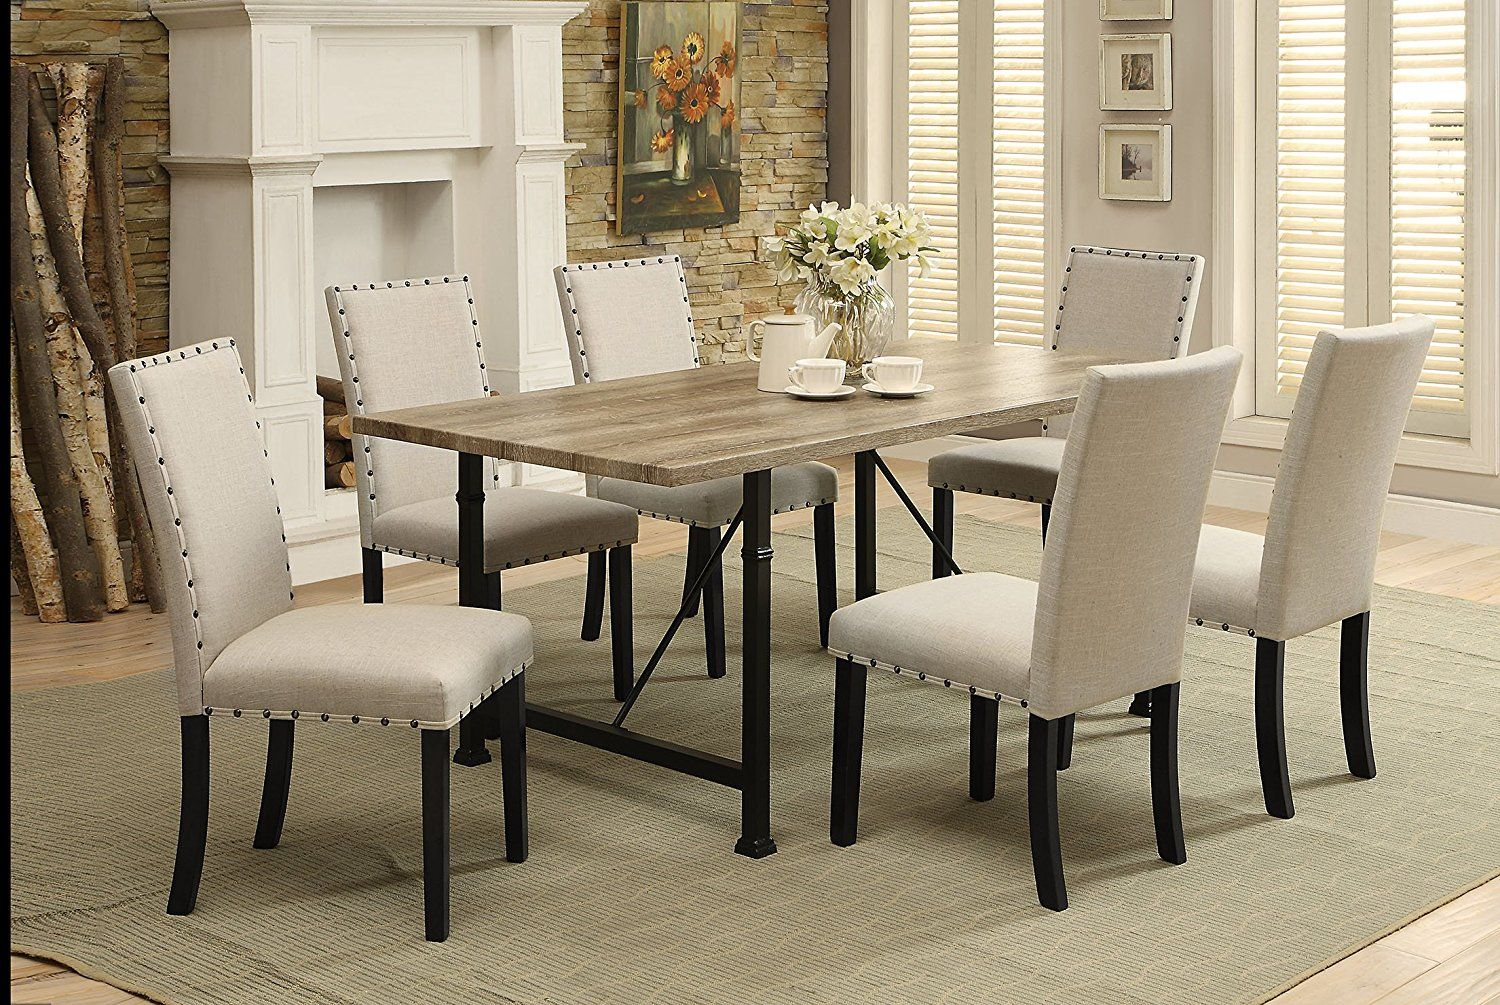 Dining room design with acme furniture oldlake dining table